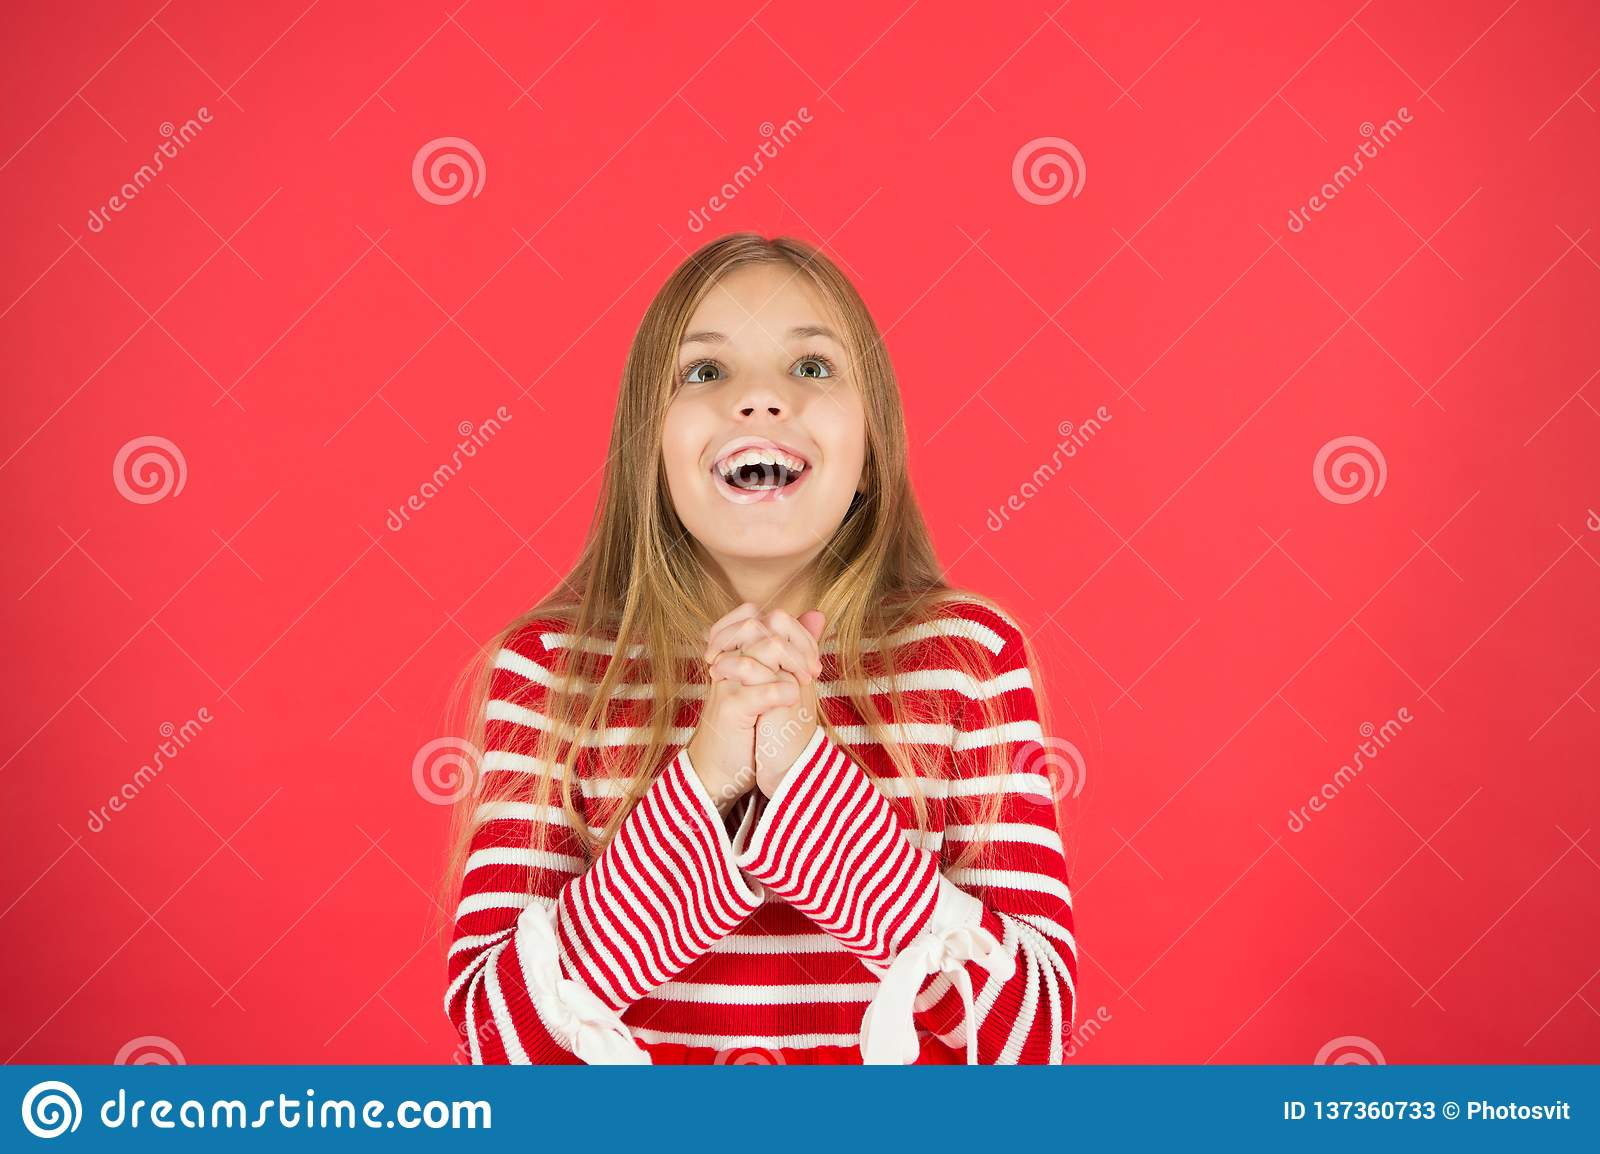 Make a wish. Hope for the best. Girl hopeful excited face making wish. Believe in miracle. Child girl dreaming her wish